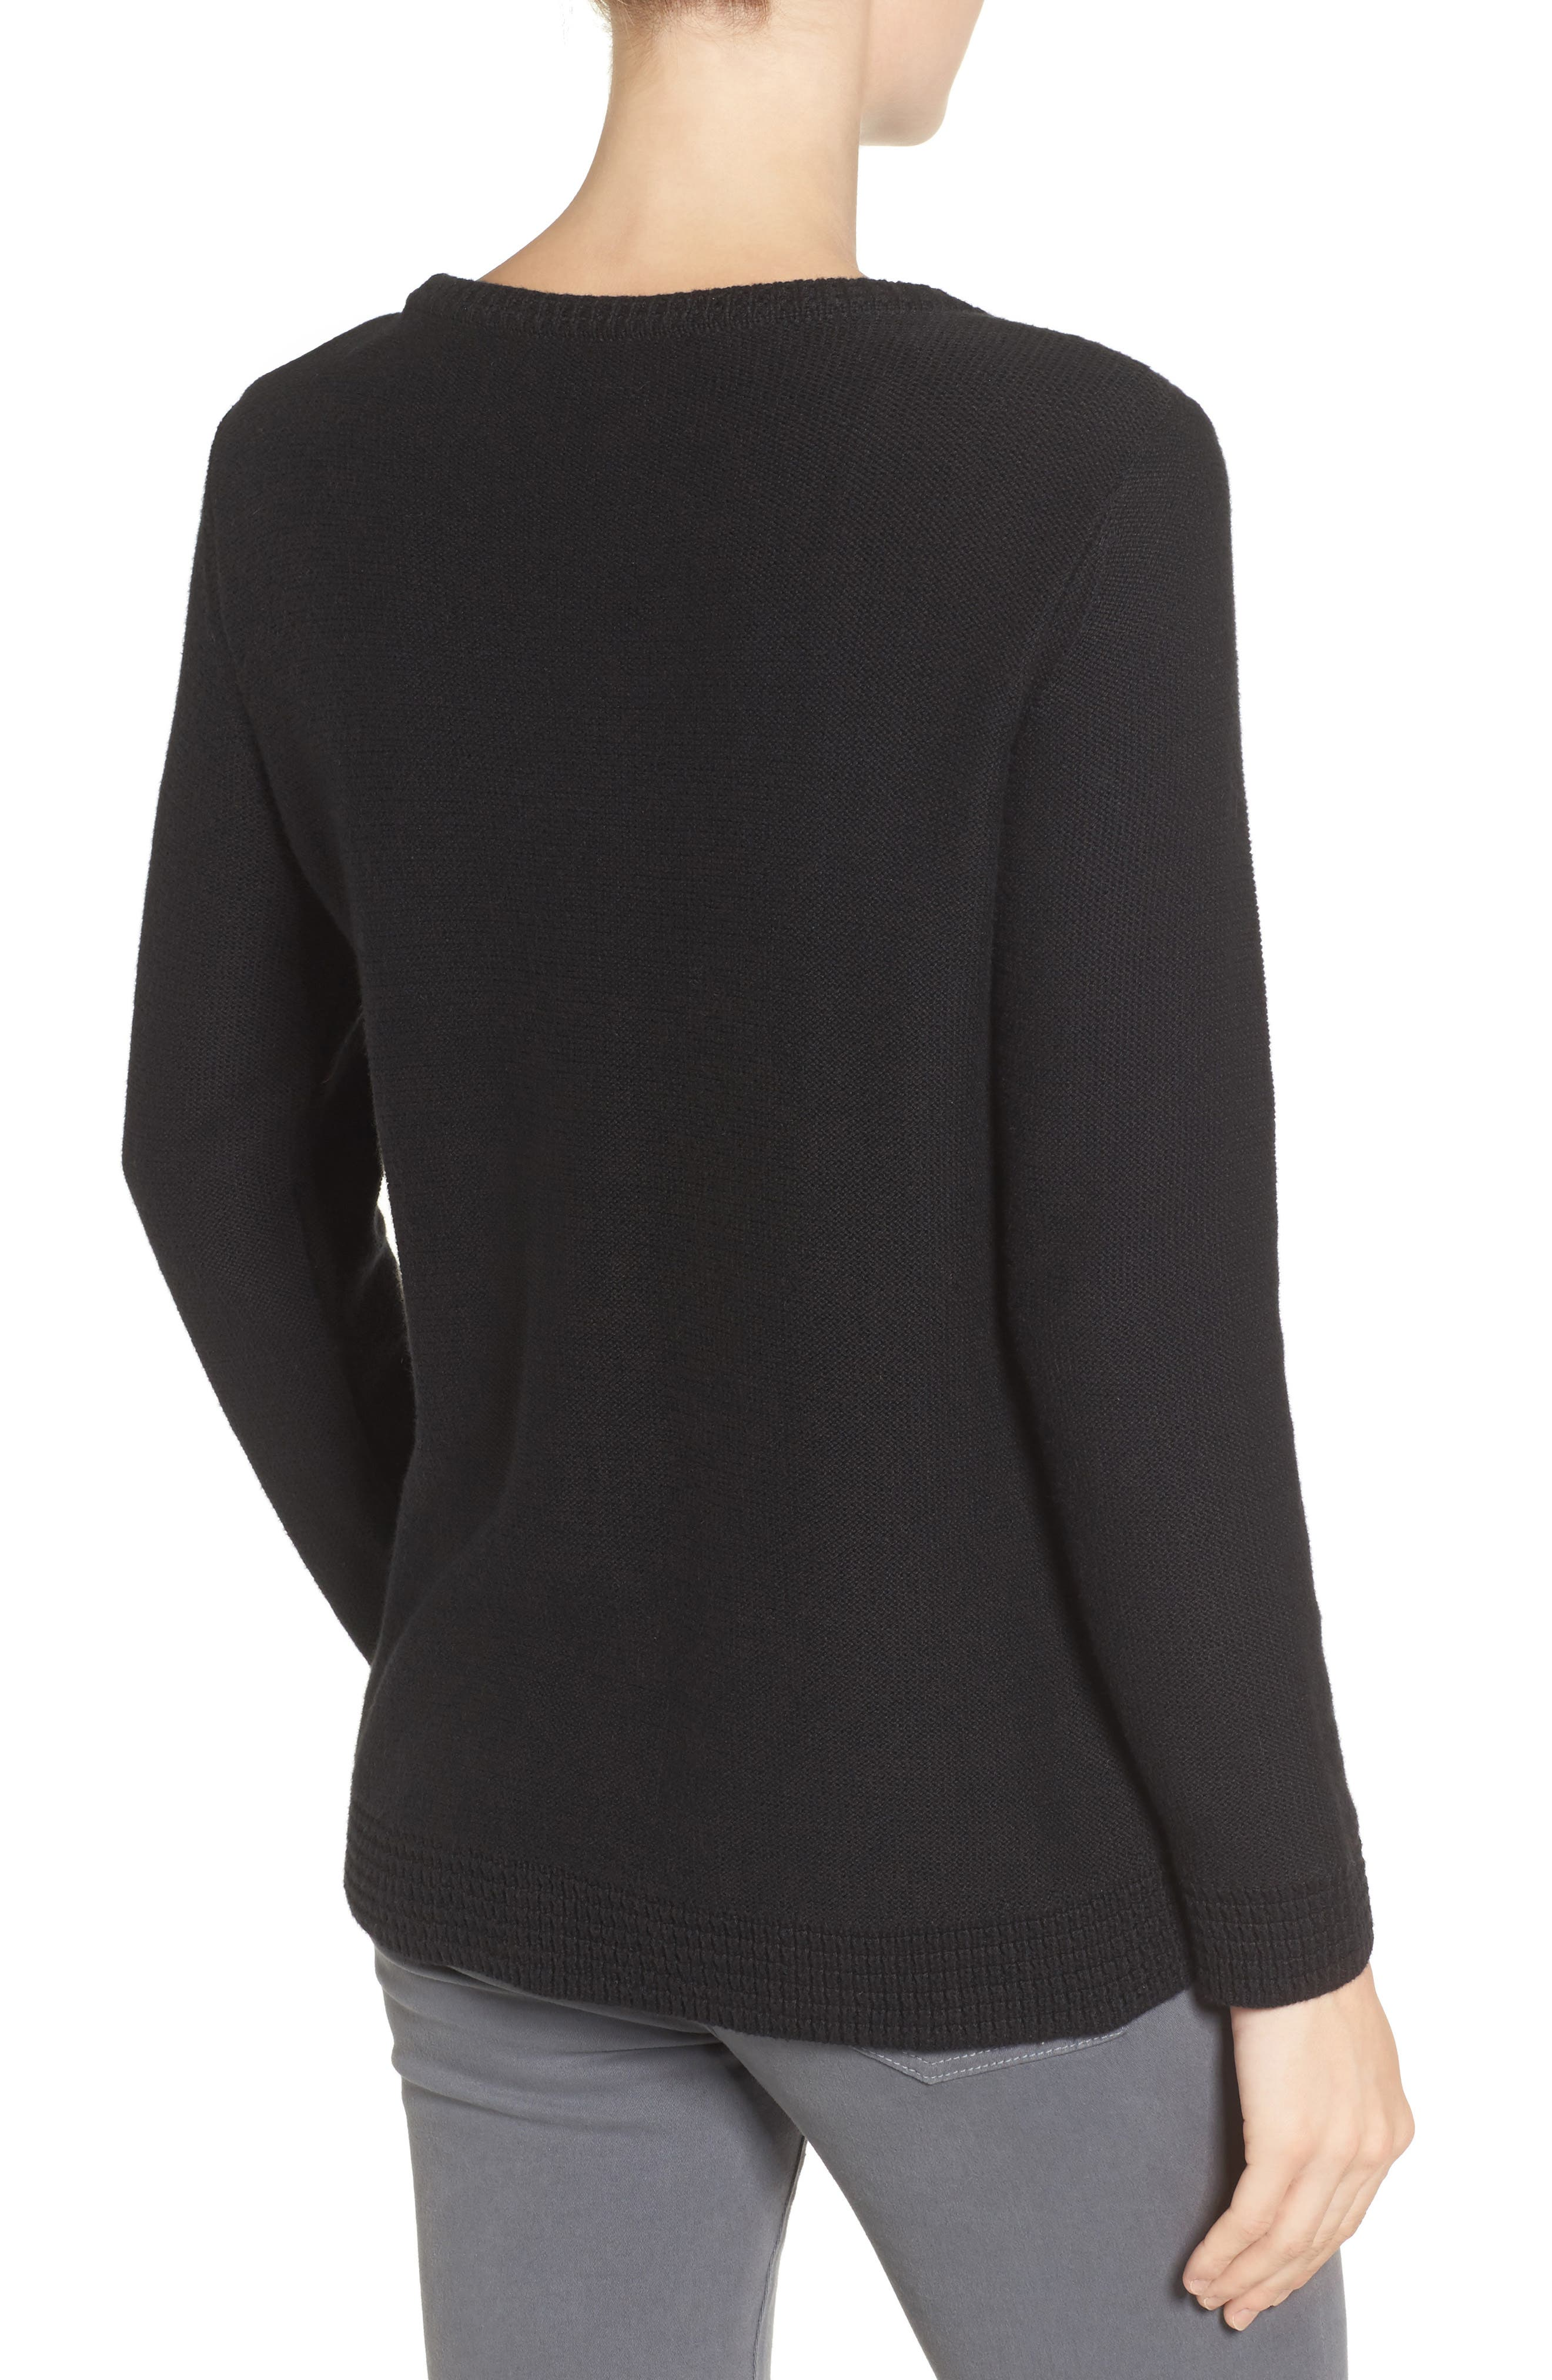 Wiley Maternity/Nursing Sweatshirt,                             Alternate thumbnail 3, color,                             BLACK